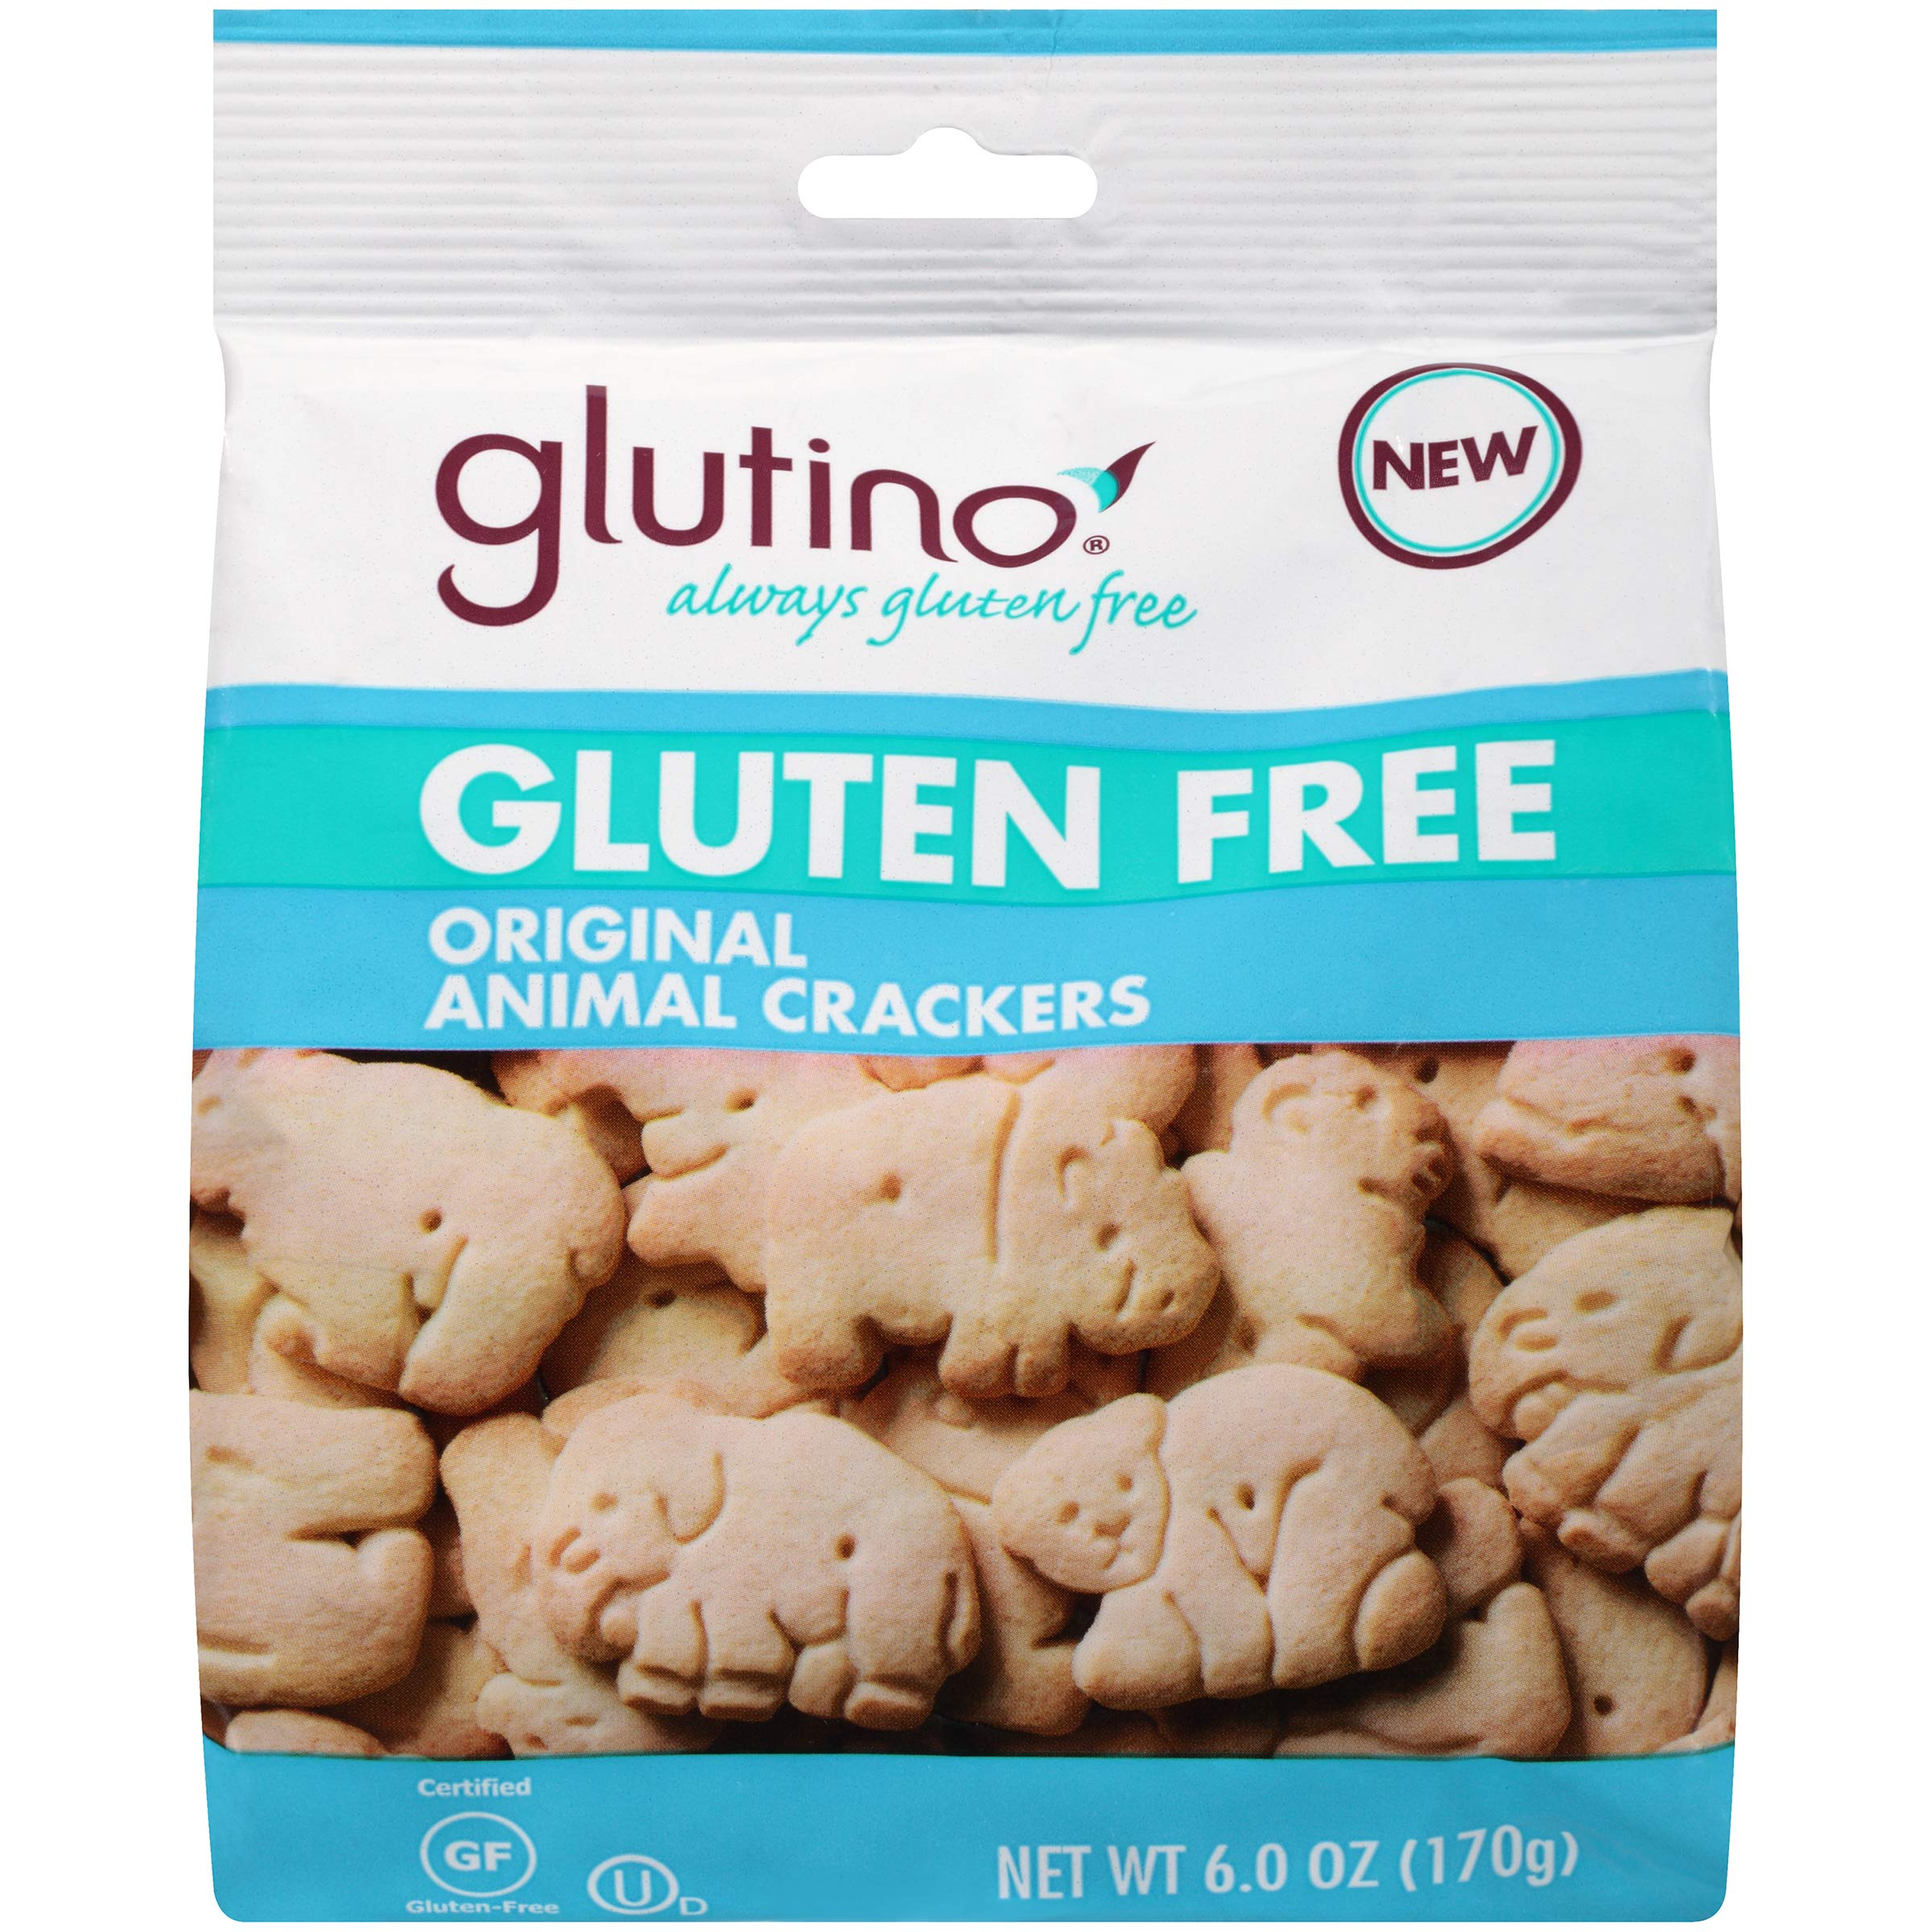 Glutino Gluten Free Animal Crackers, Crunchy and Sweet, Original Flavor, 6 Ounce by Glutino